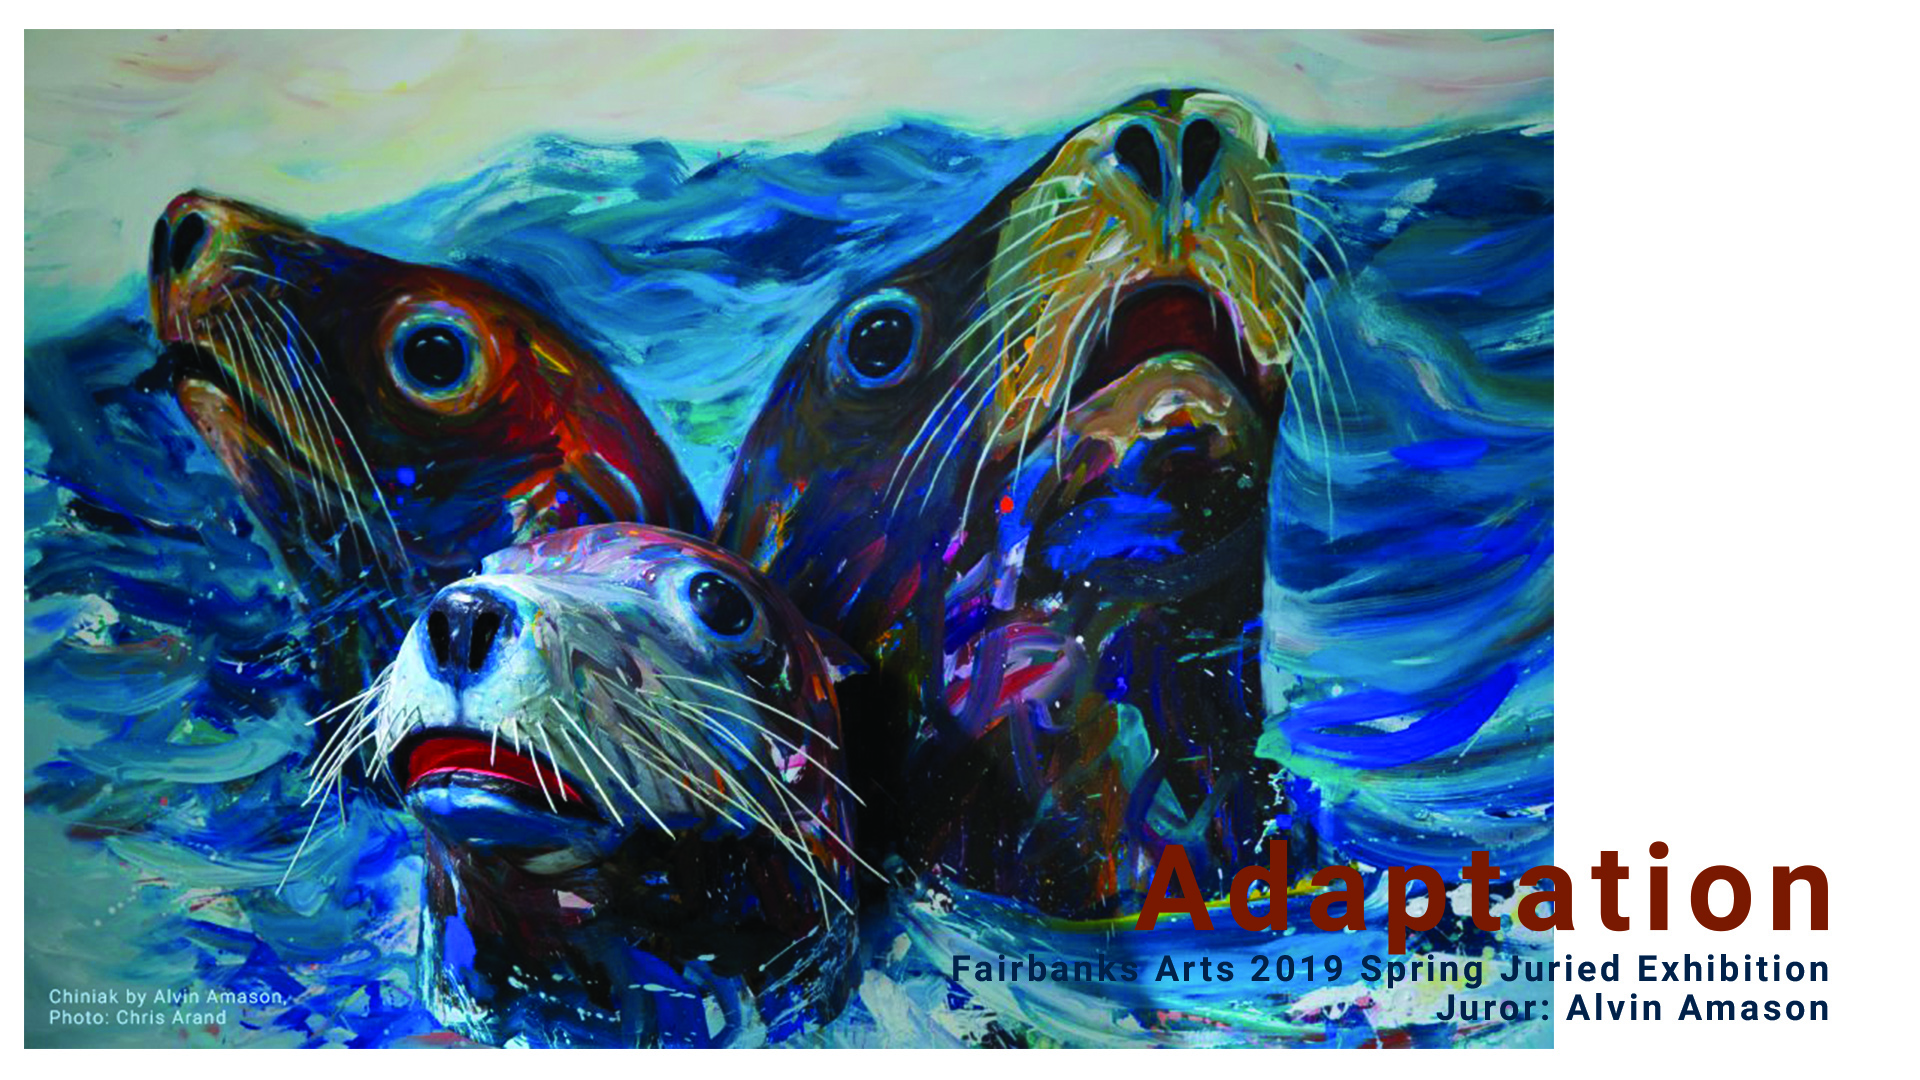 Adaptation - Juror: Alvin AmasonFairbanks Arts AssociationThe Bear Gallery2300 Airport Way, Fairbanks, AK 99701April 5-28, 2019Invited: Schooling